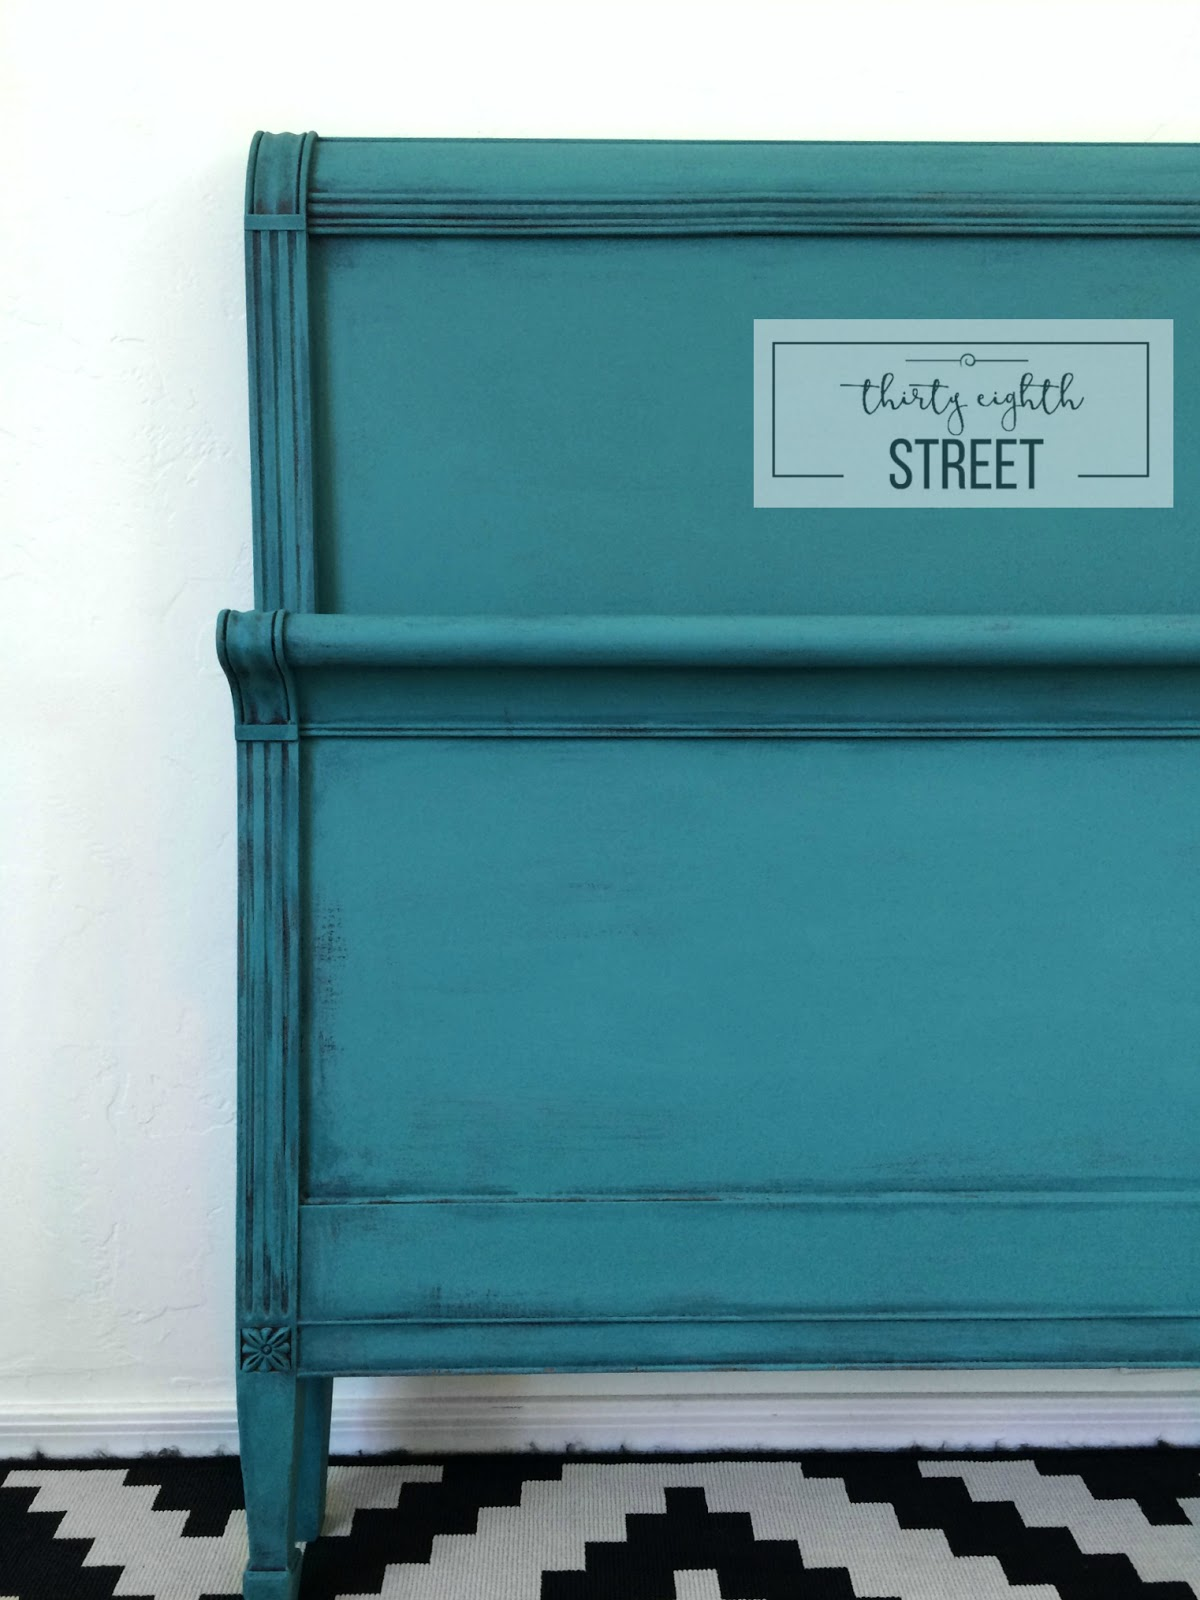 What Color To Paint Furniture layering chalk paint® on furniture - thirty eighth street